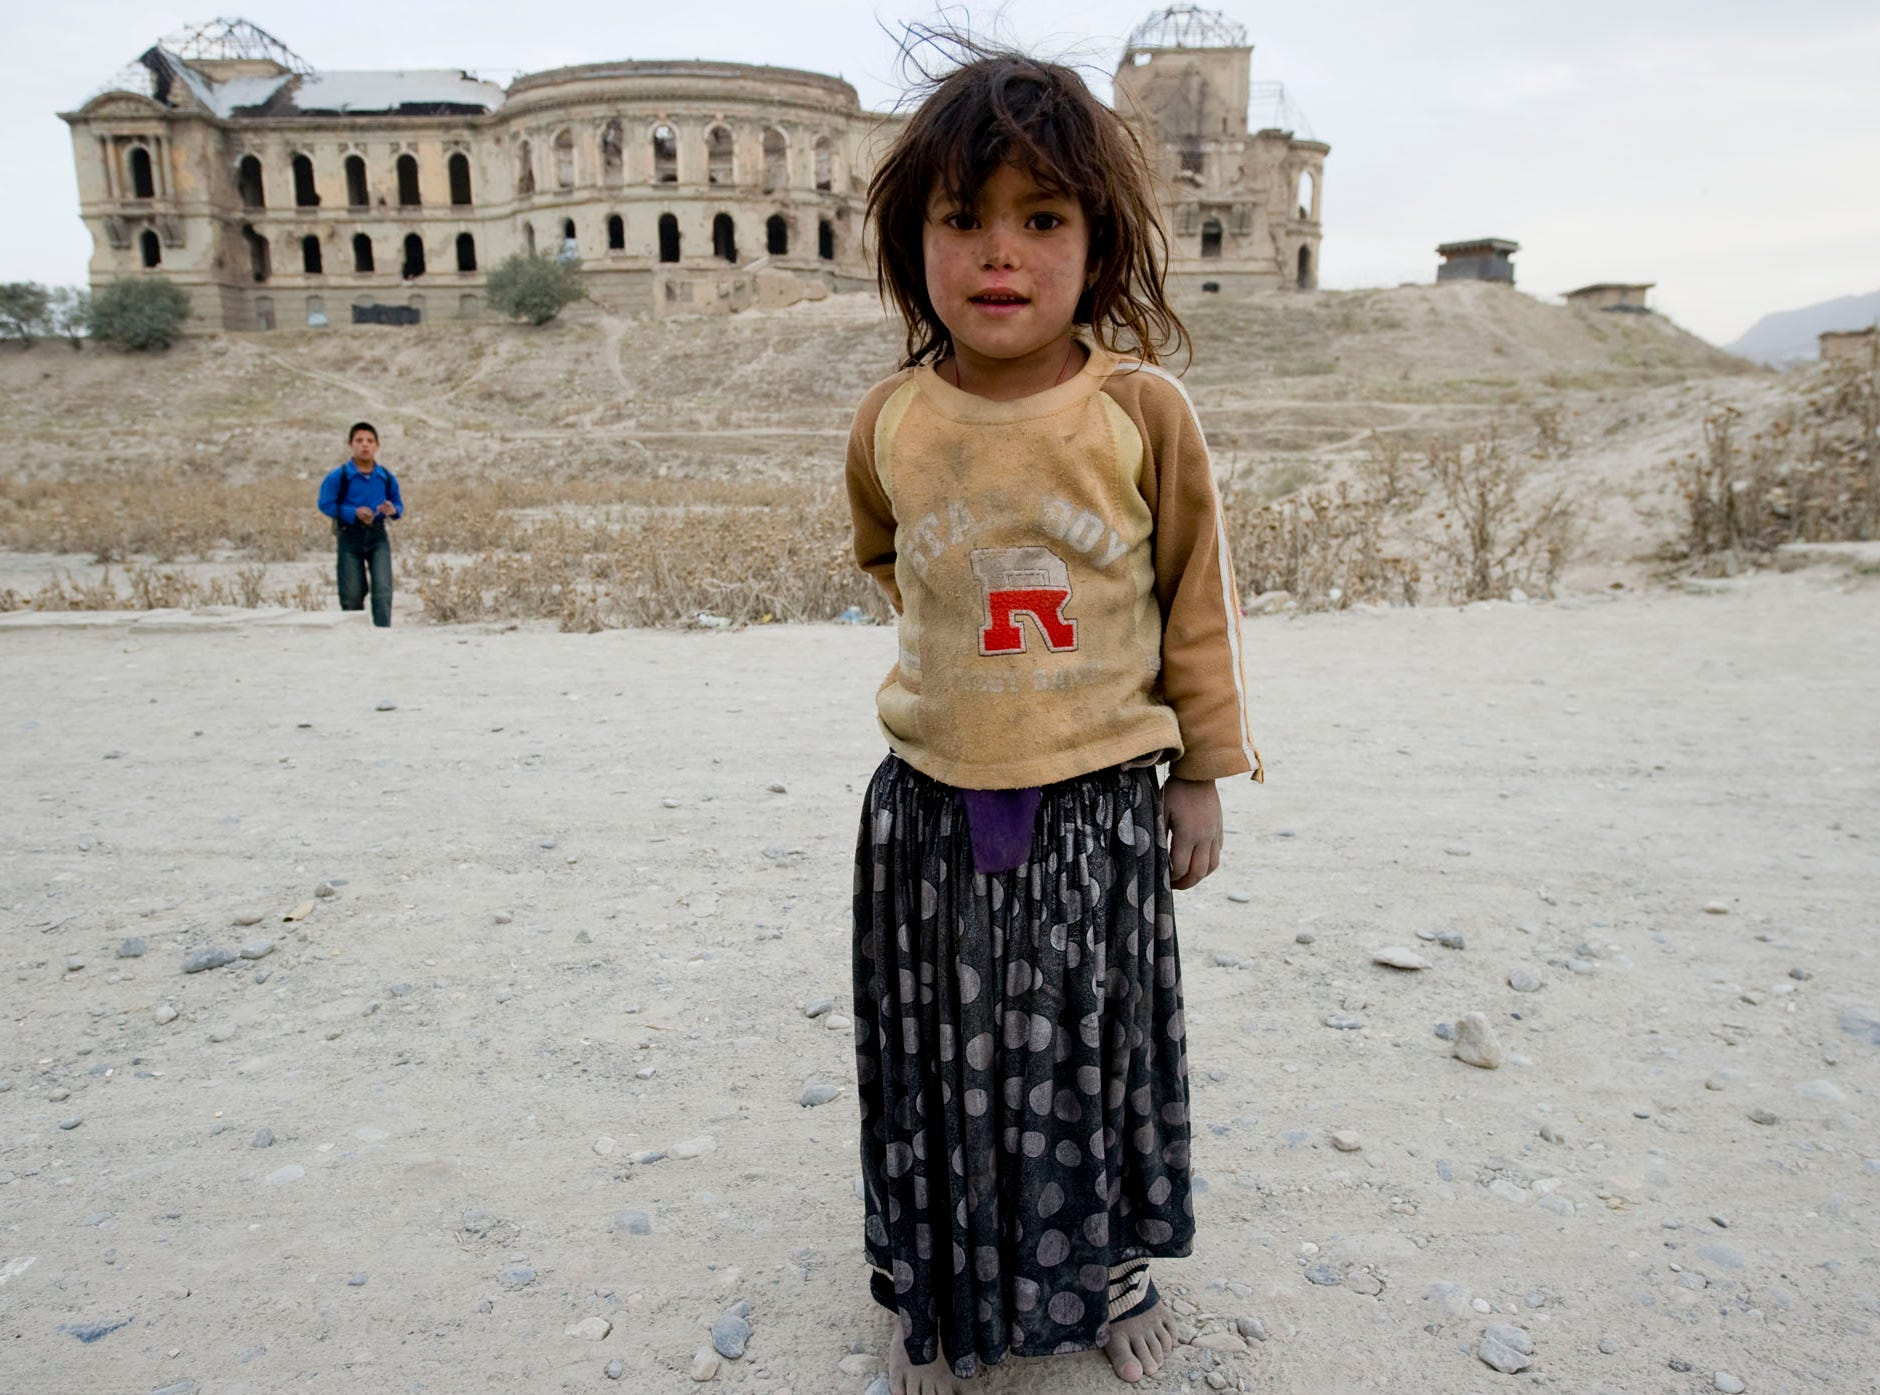 September 2010: A Kochis girl waits for a chance to beg money off passersby. Dozens of her people live in the ruins of the Afghan royal palace in Kabul which was heavily damaged in the civil war that ensued after the Soviets pulled out of the country in 1989.